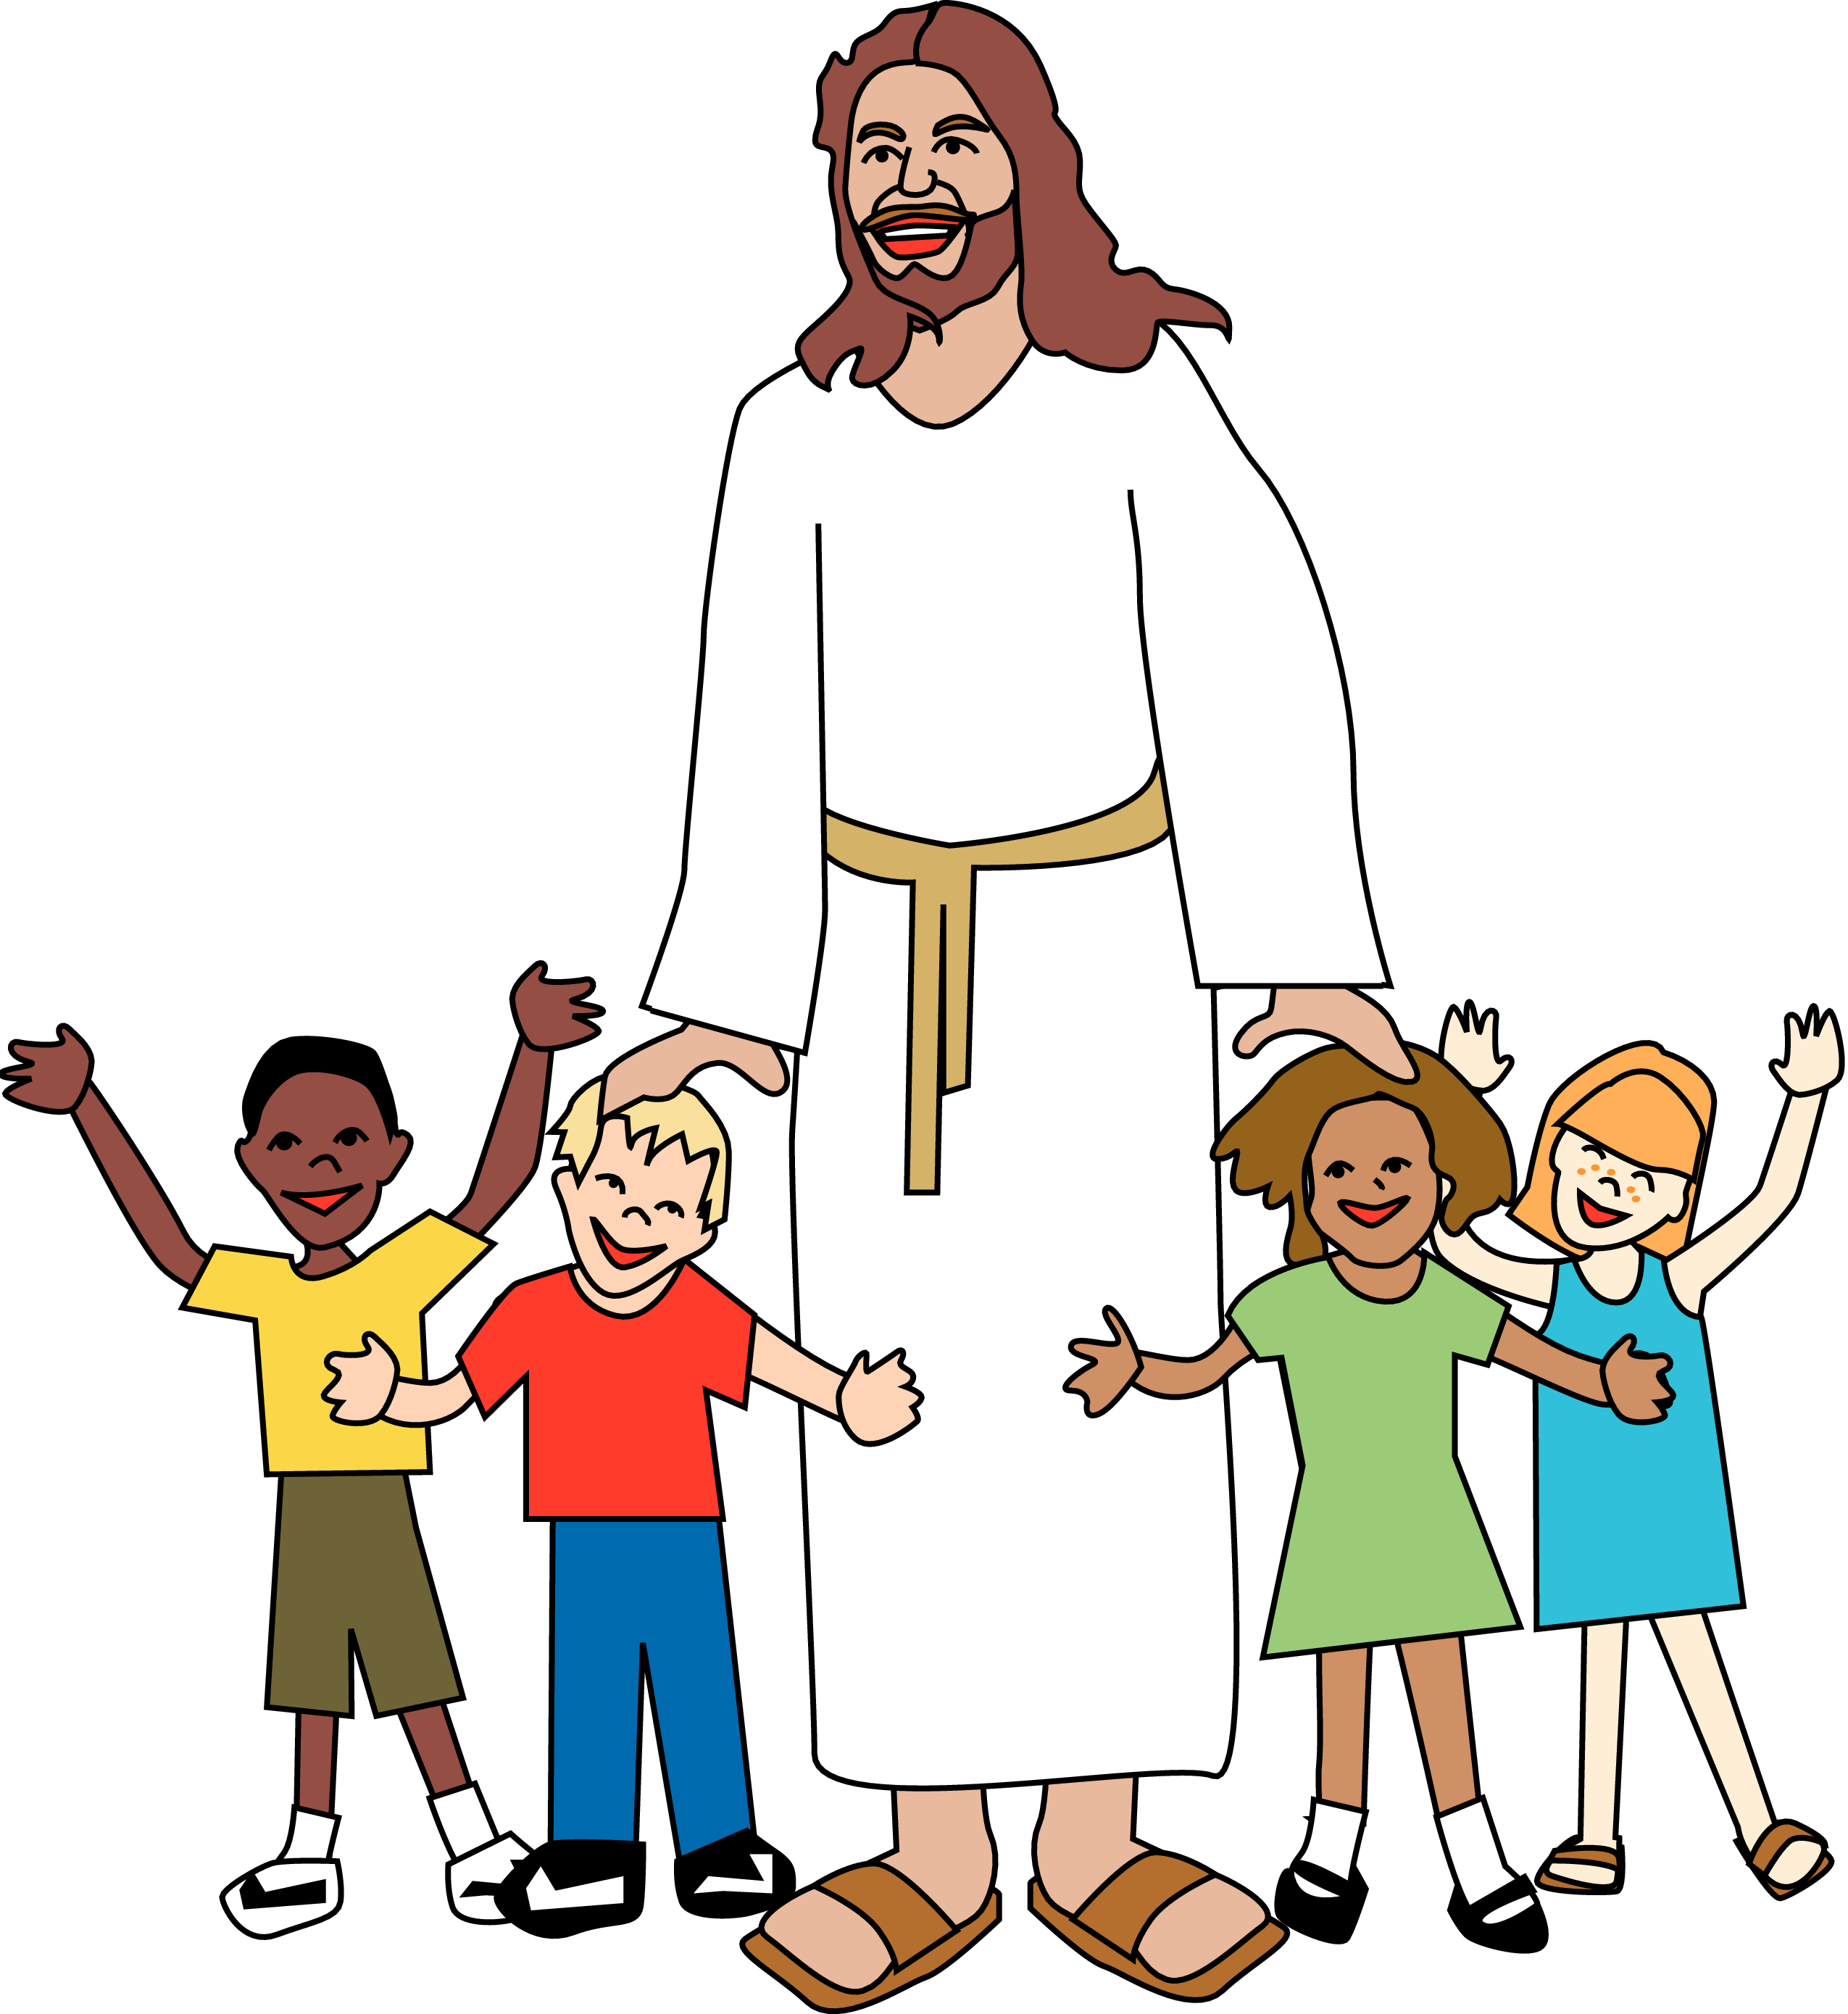 Stations of the cross clipart for children vector black and white download Jesus With Children Clipart at GetDrawings.com | Free for personal ... vector black and white download